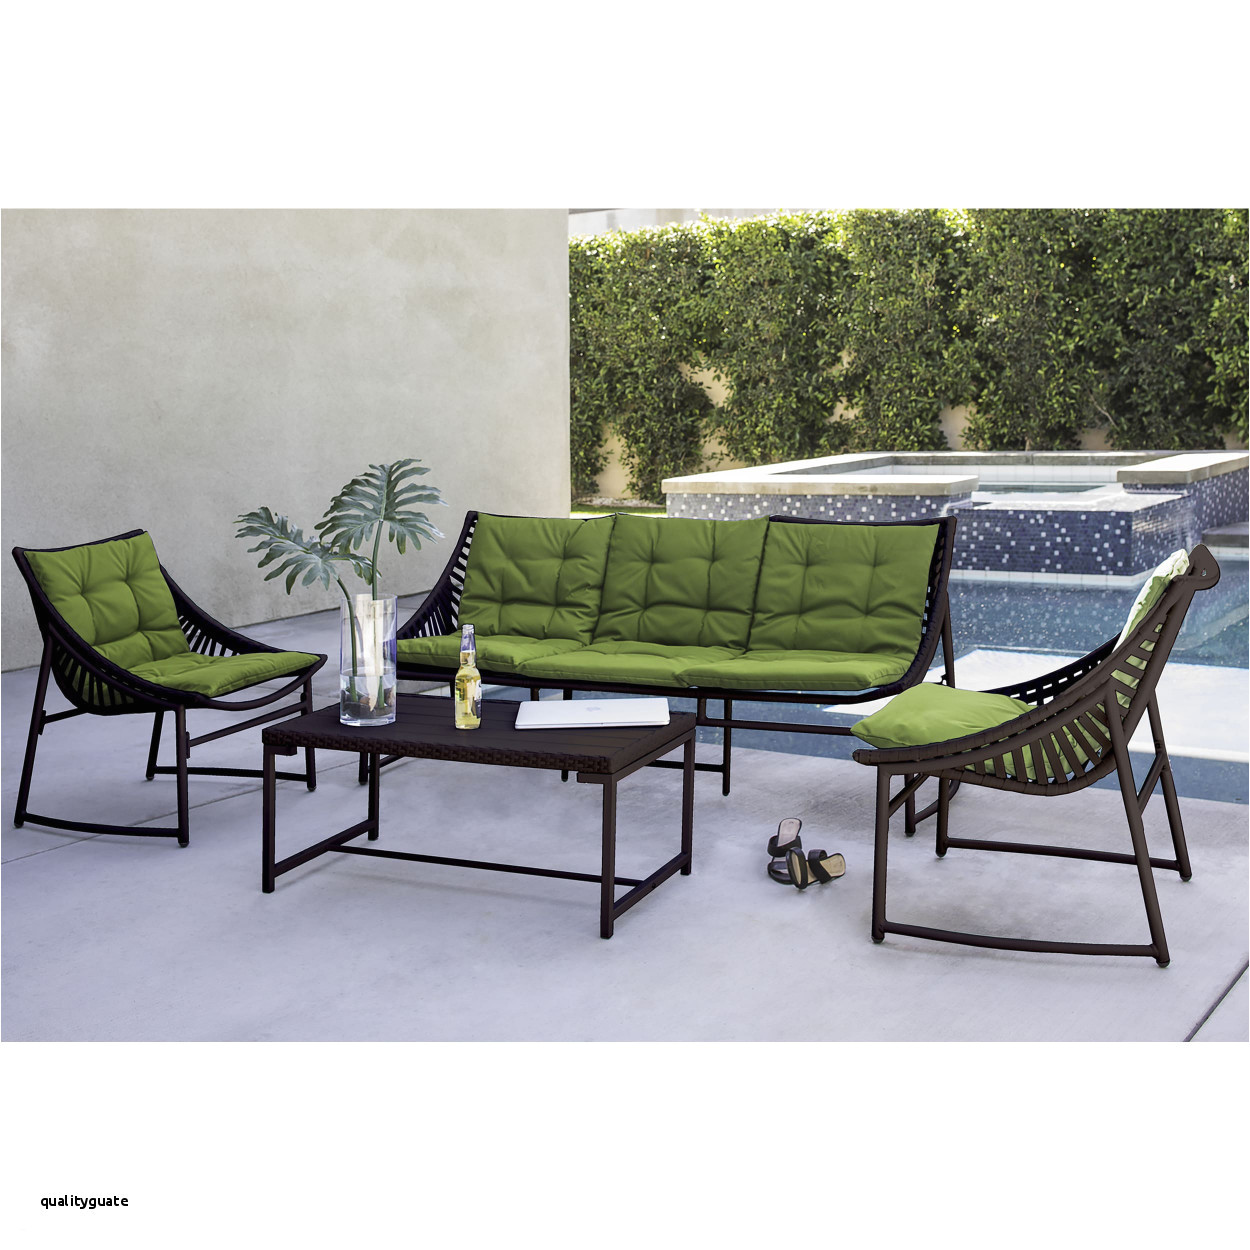 Patio Chair Sling Replacement Diy 50 Images Gallery Sling Back Chairs Bestqualitypomskies Com